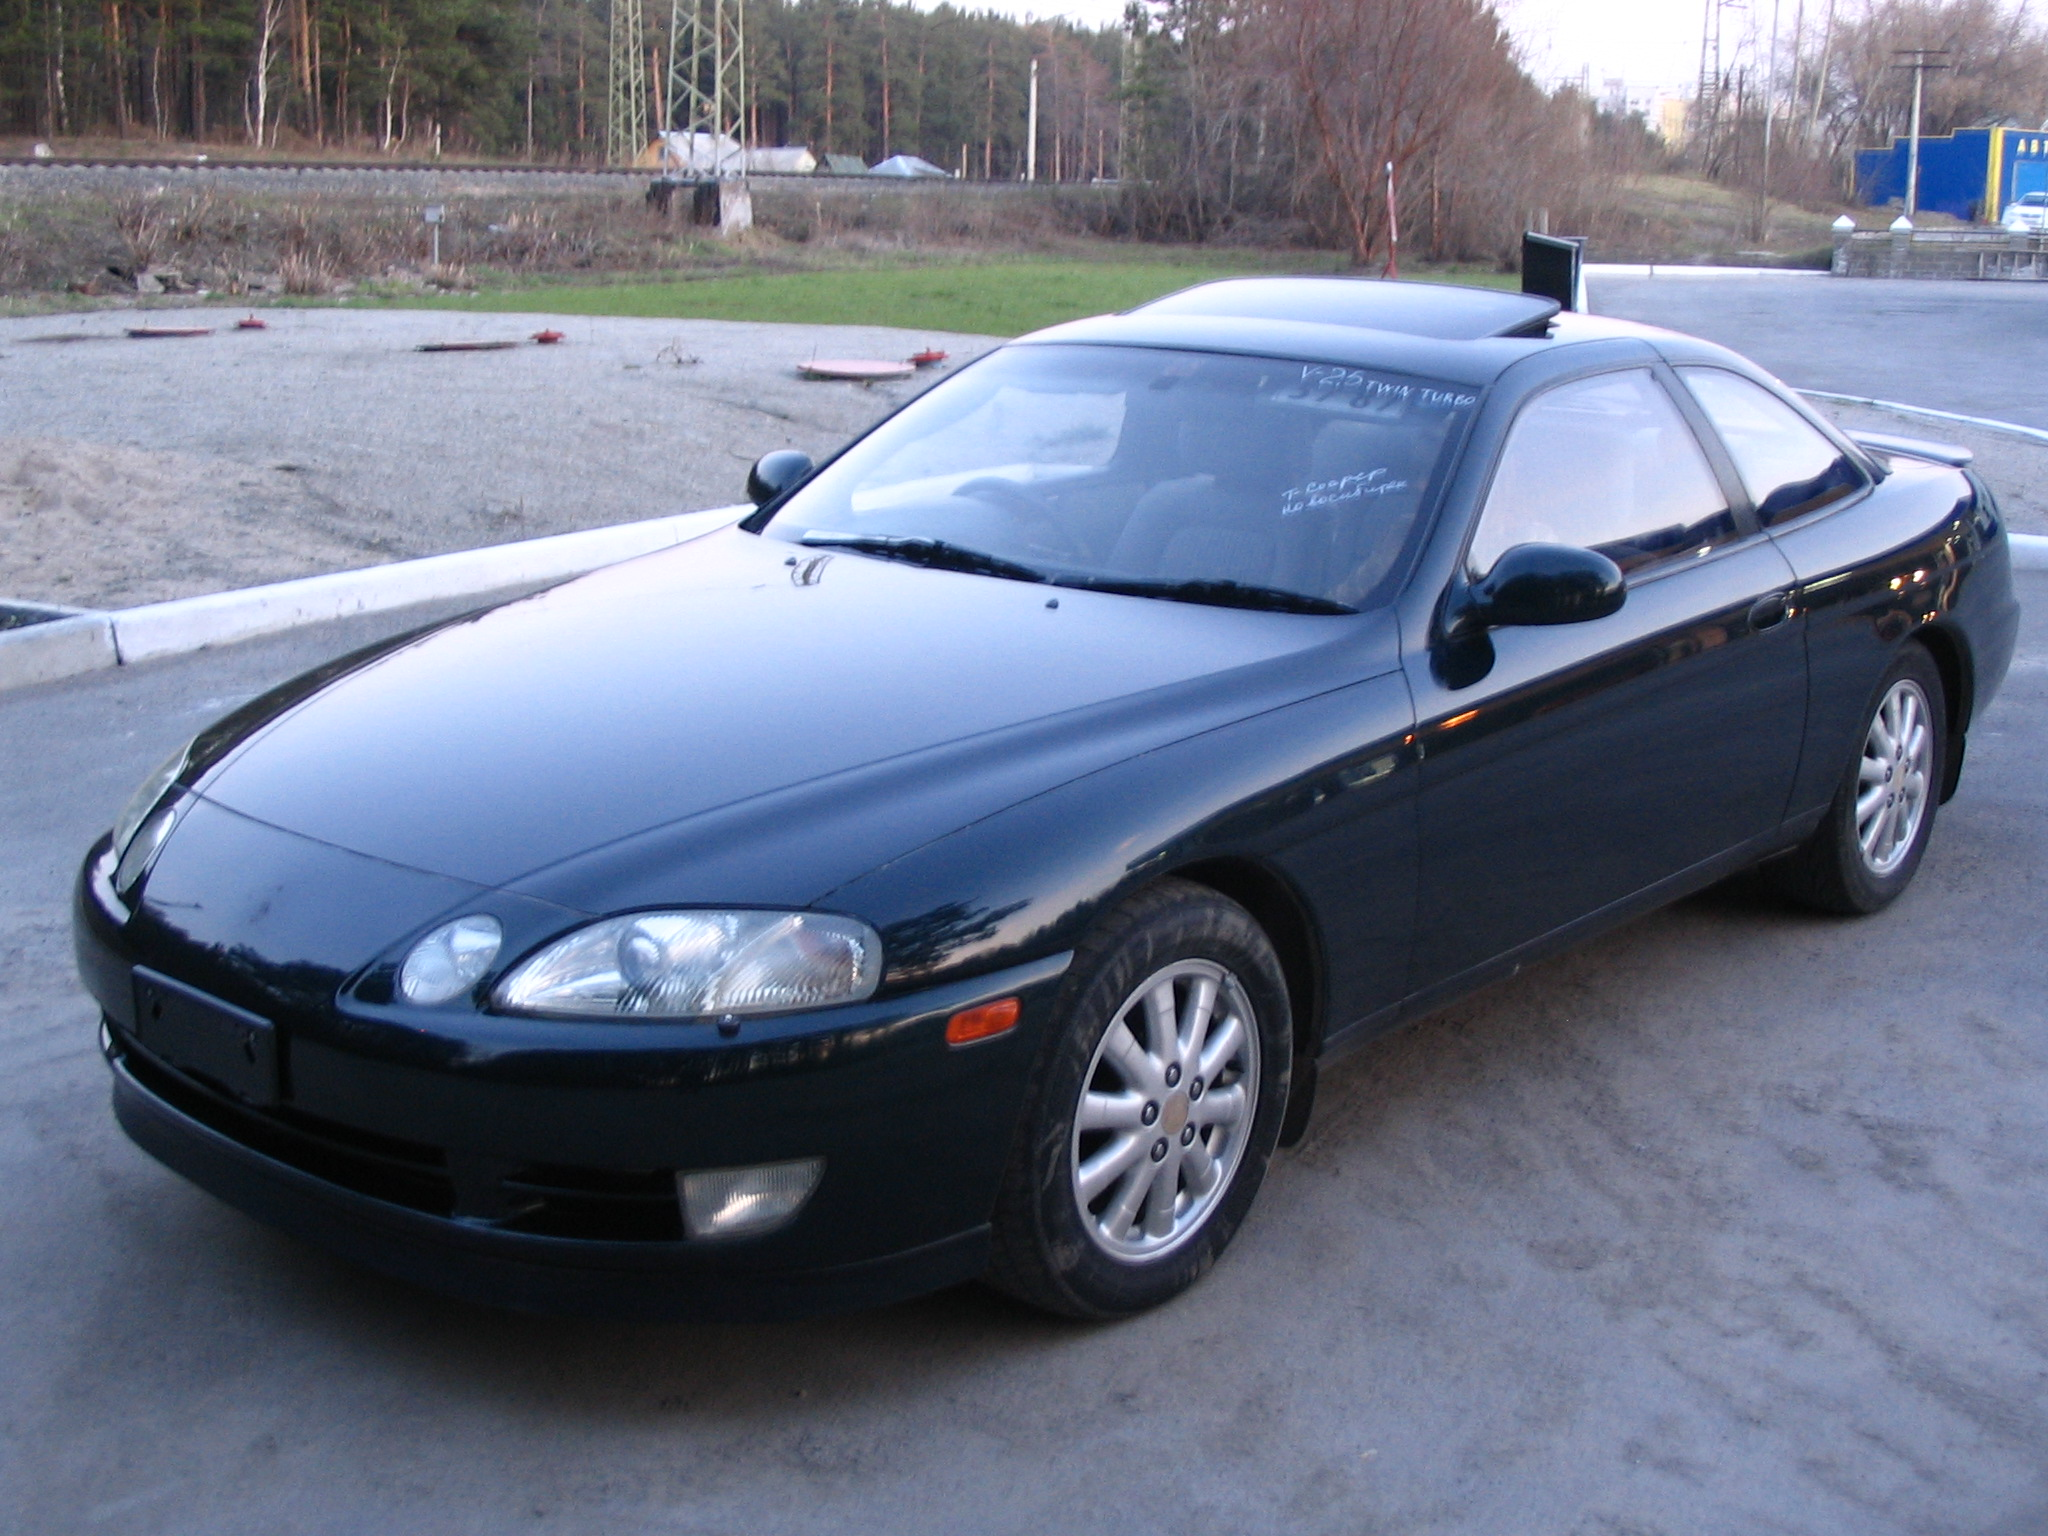 Drift Cars For Sale >> 1994 Toyota Soarer Pictures, 2500cc., Gasoline, FR or RR ...